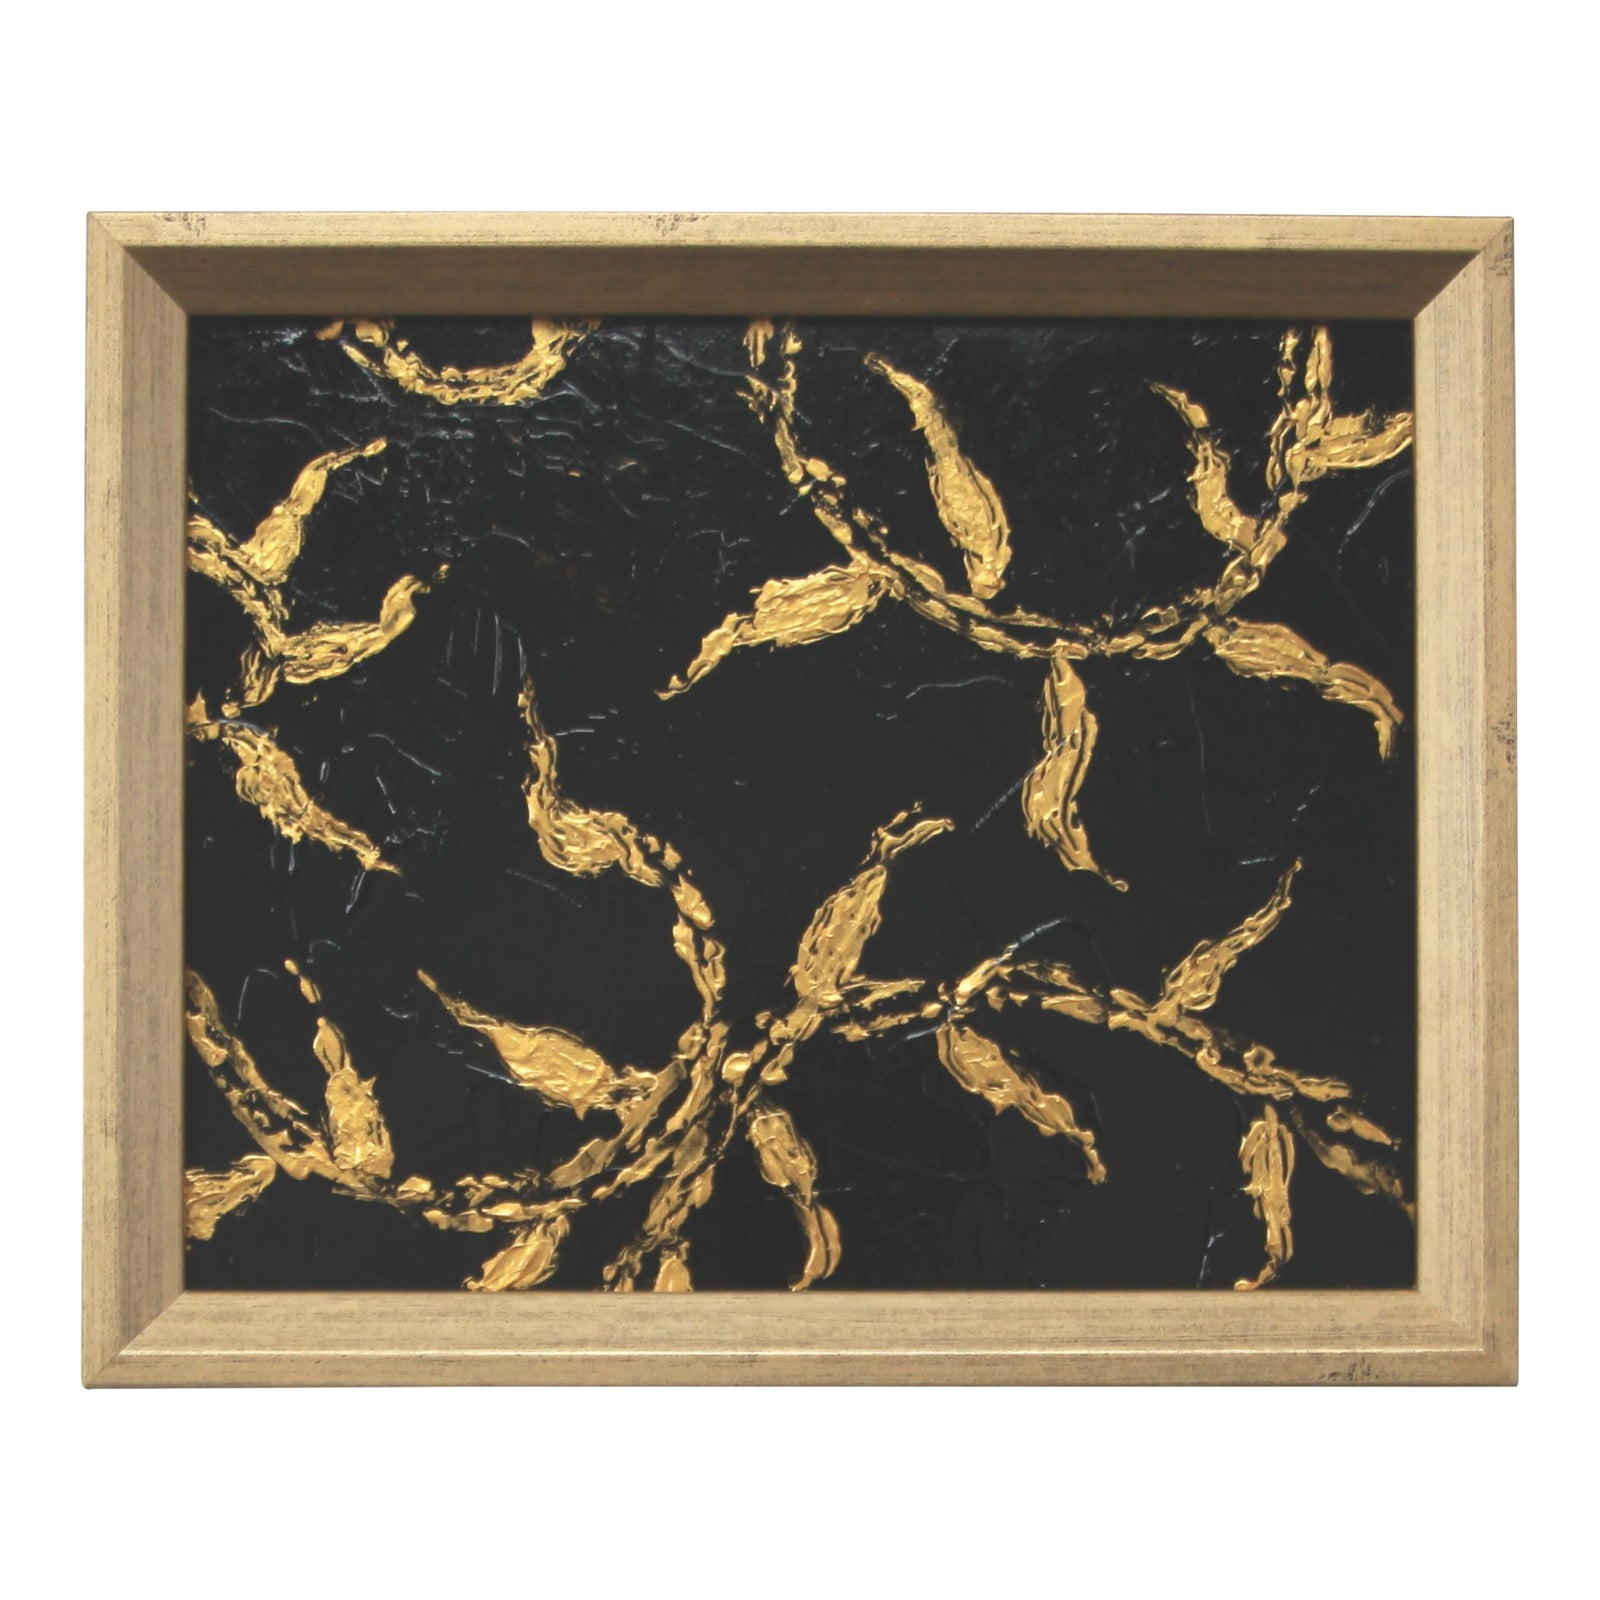 Metallic Gold & Black Abstract Leaf & Vine Painting By